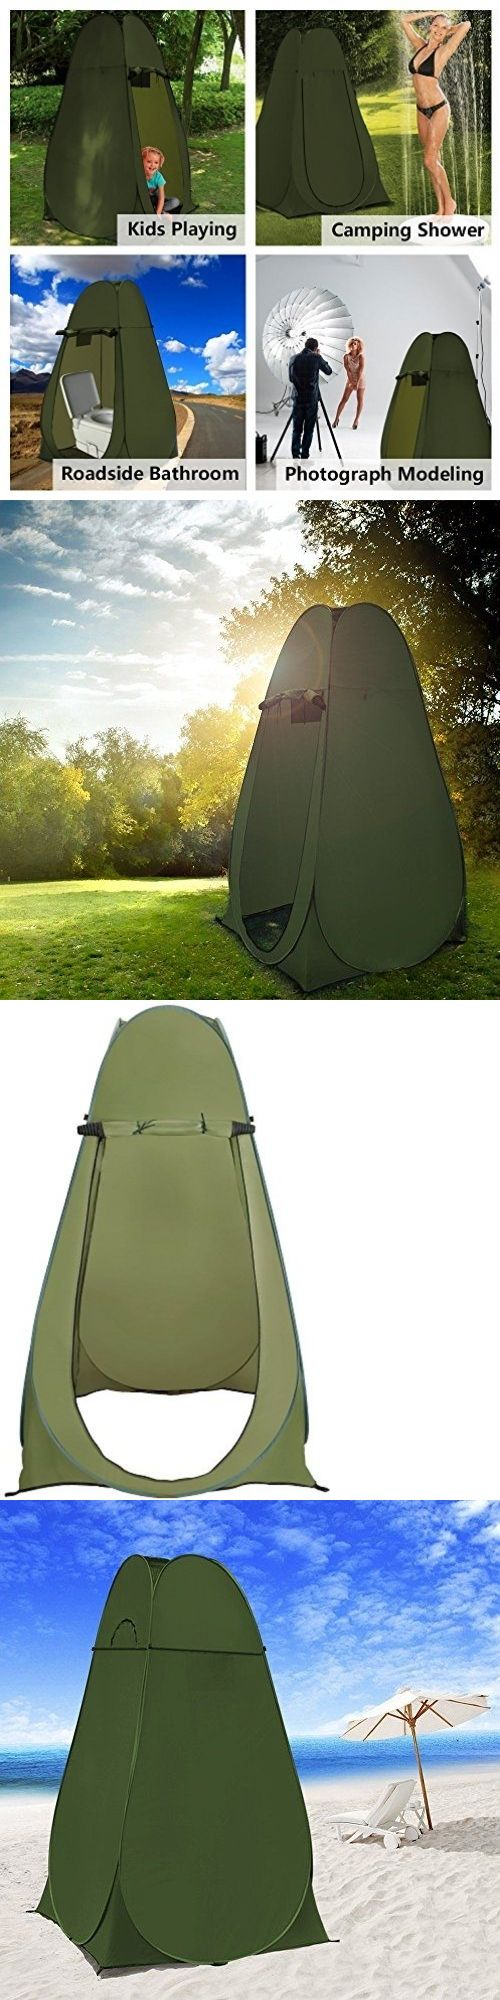 Other Camping Hygiene Accs 181400: Shower Tent Changing Portable Camping Beach Pop Up Toilet Room Outdoor Backpack BUY IT NOW ONLY: $62.99